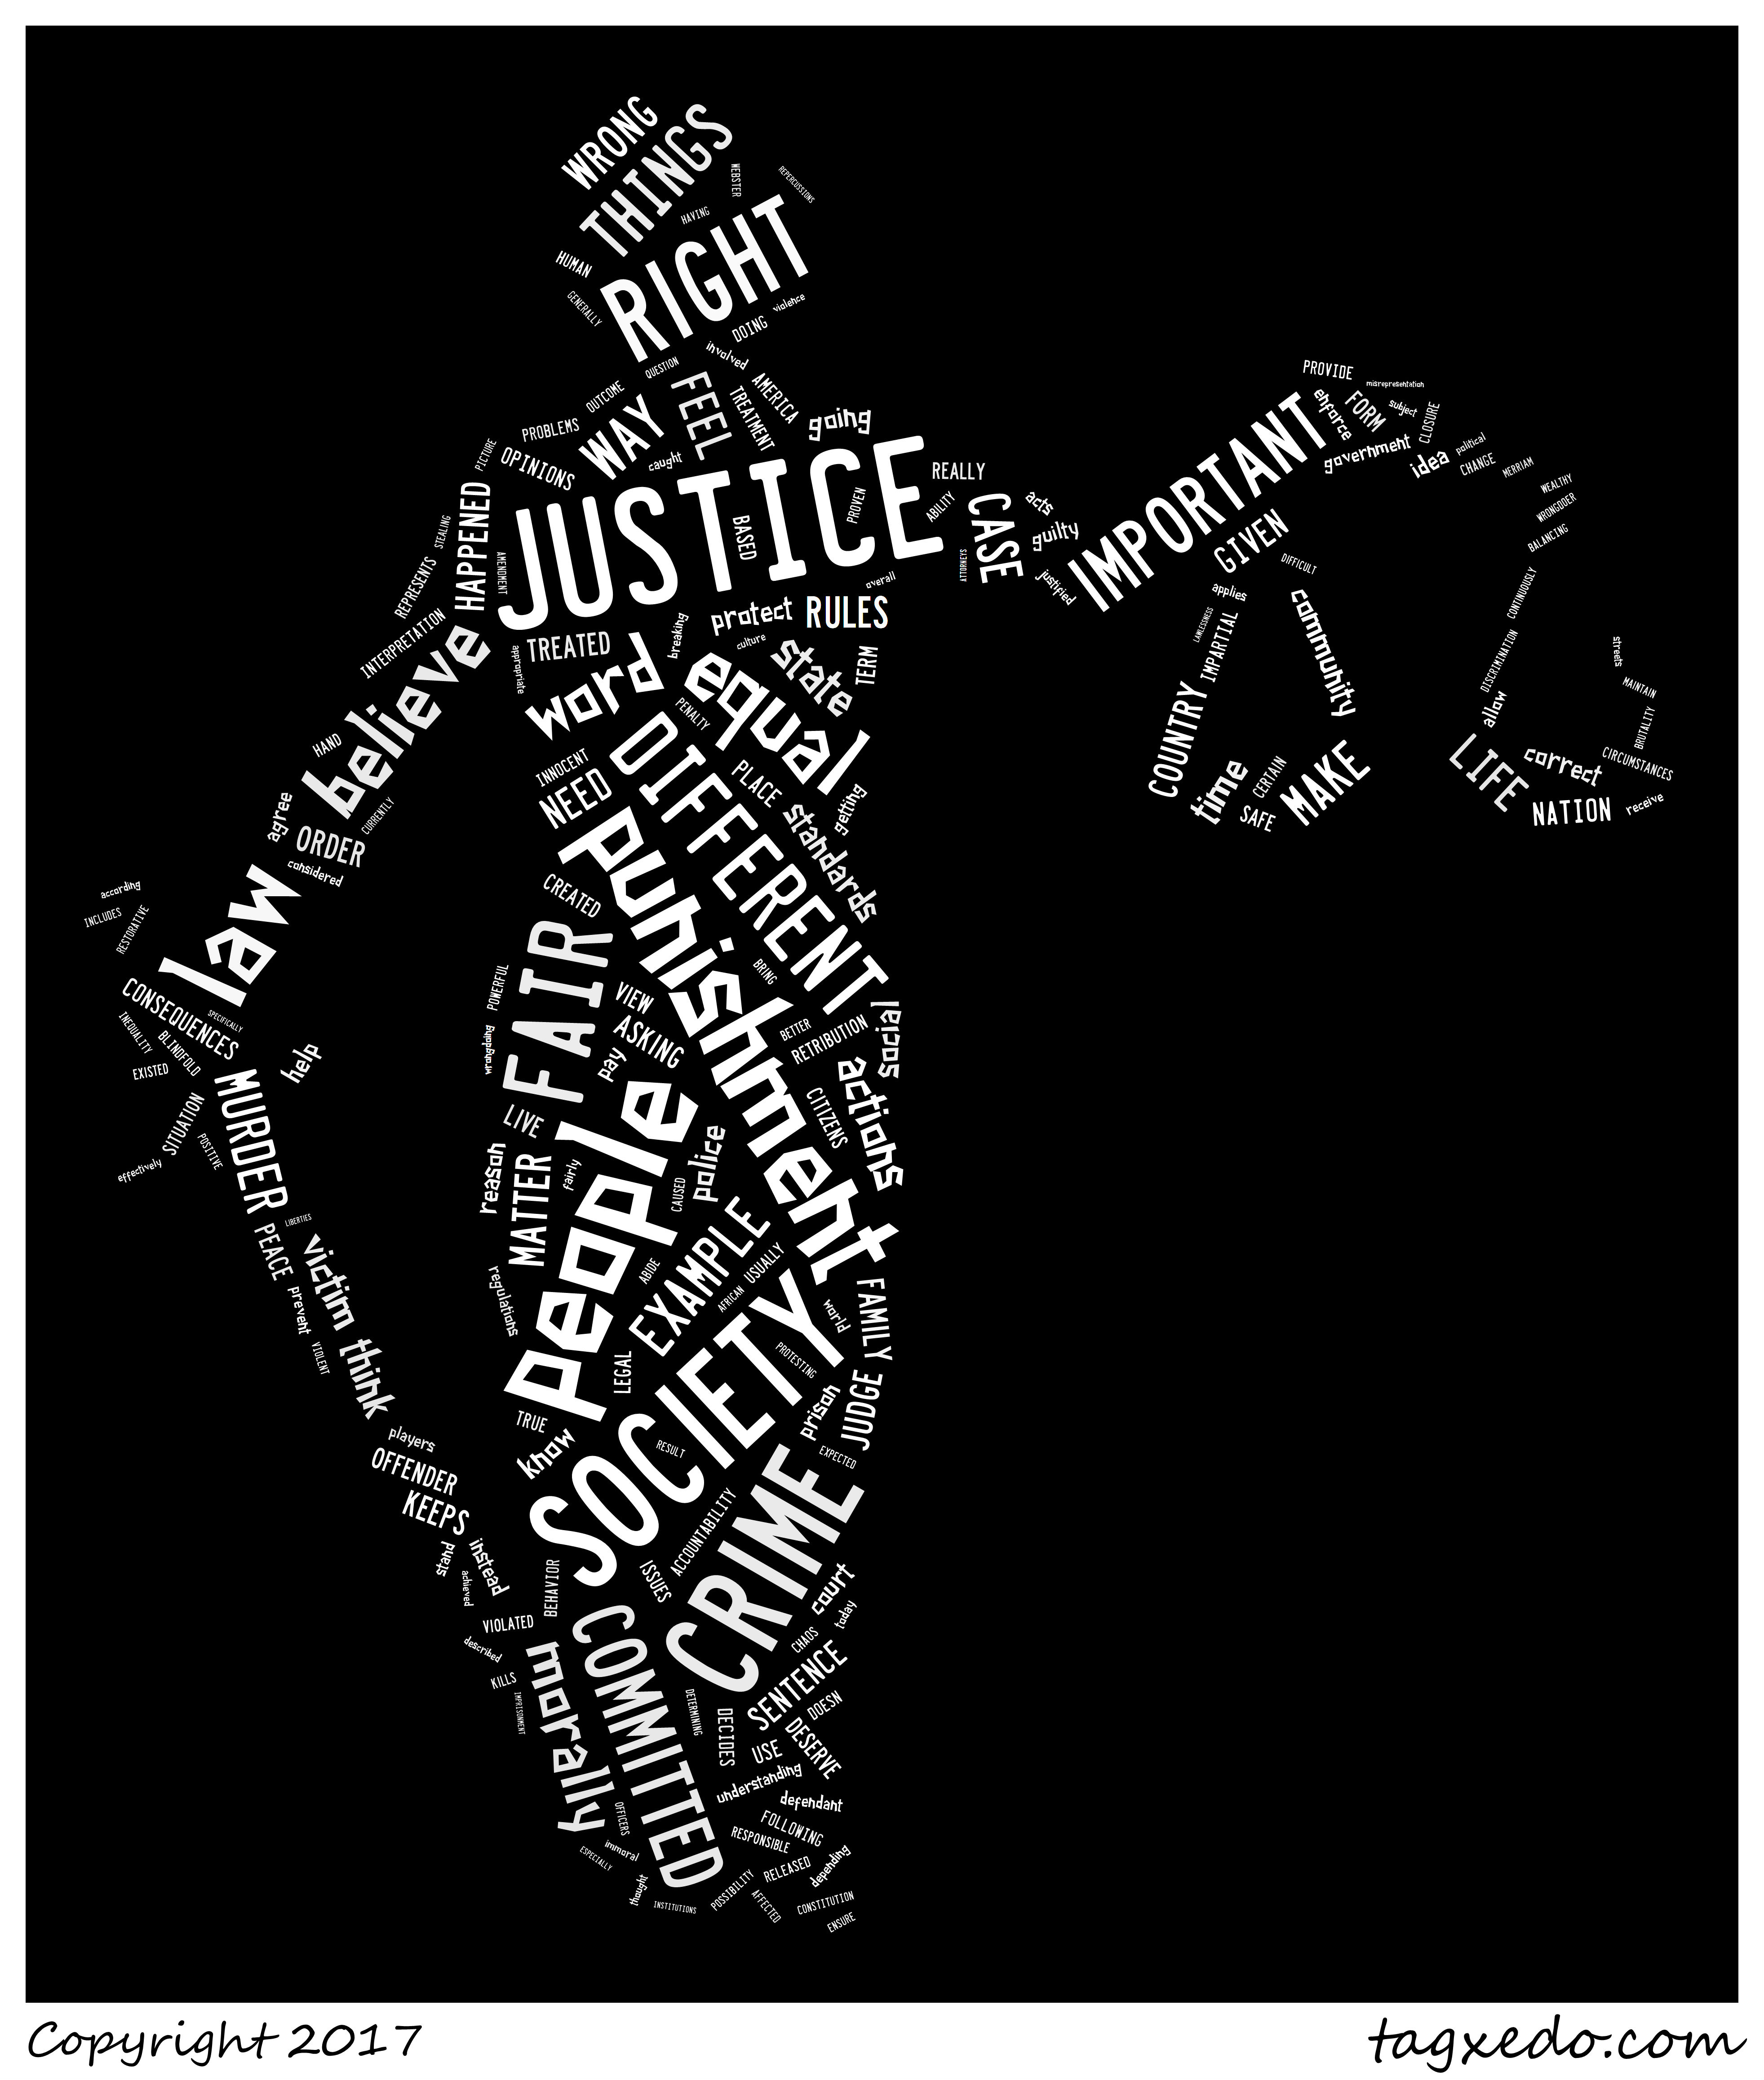 Lady Justice word cloud using student definitions of what justice means to them